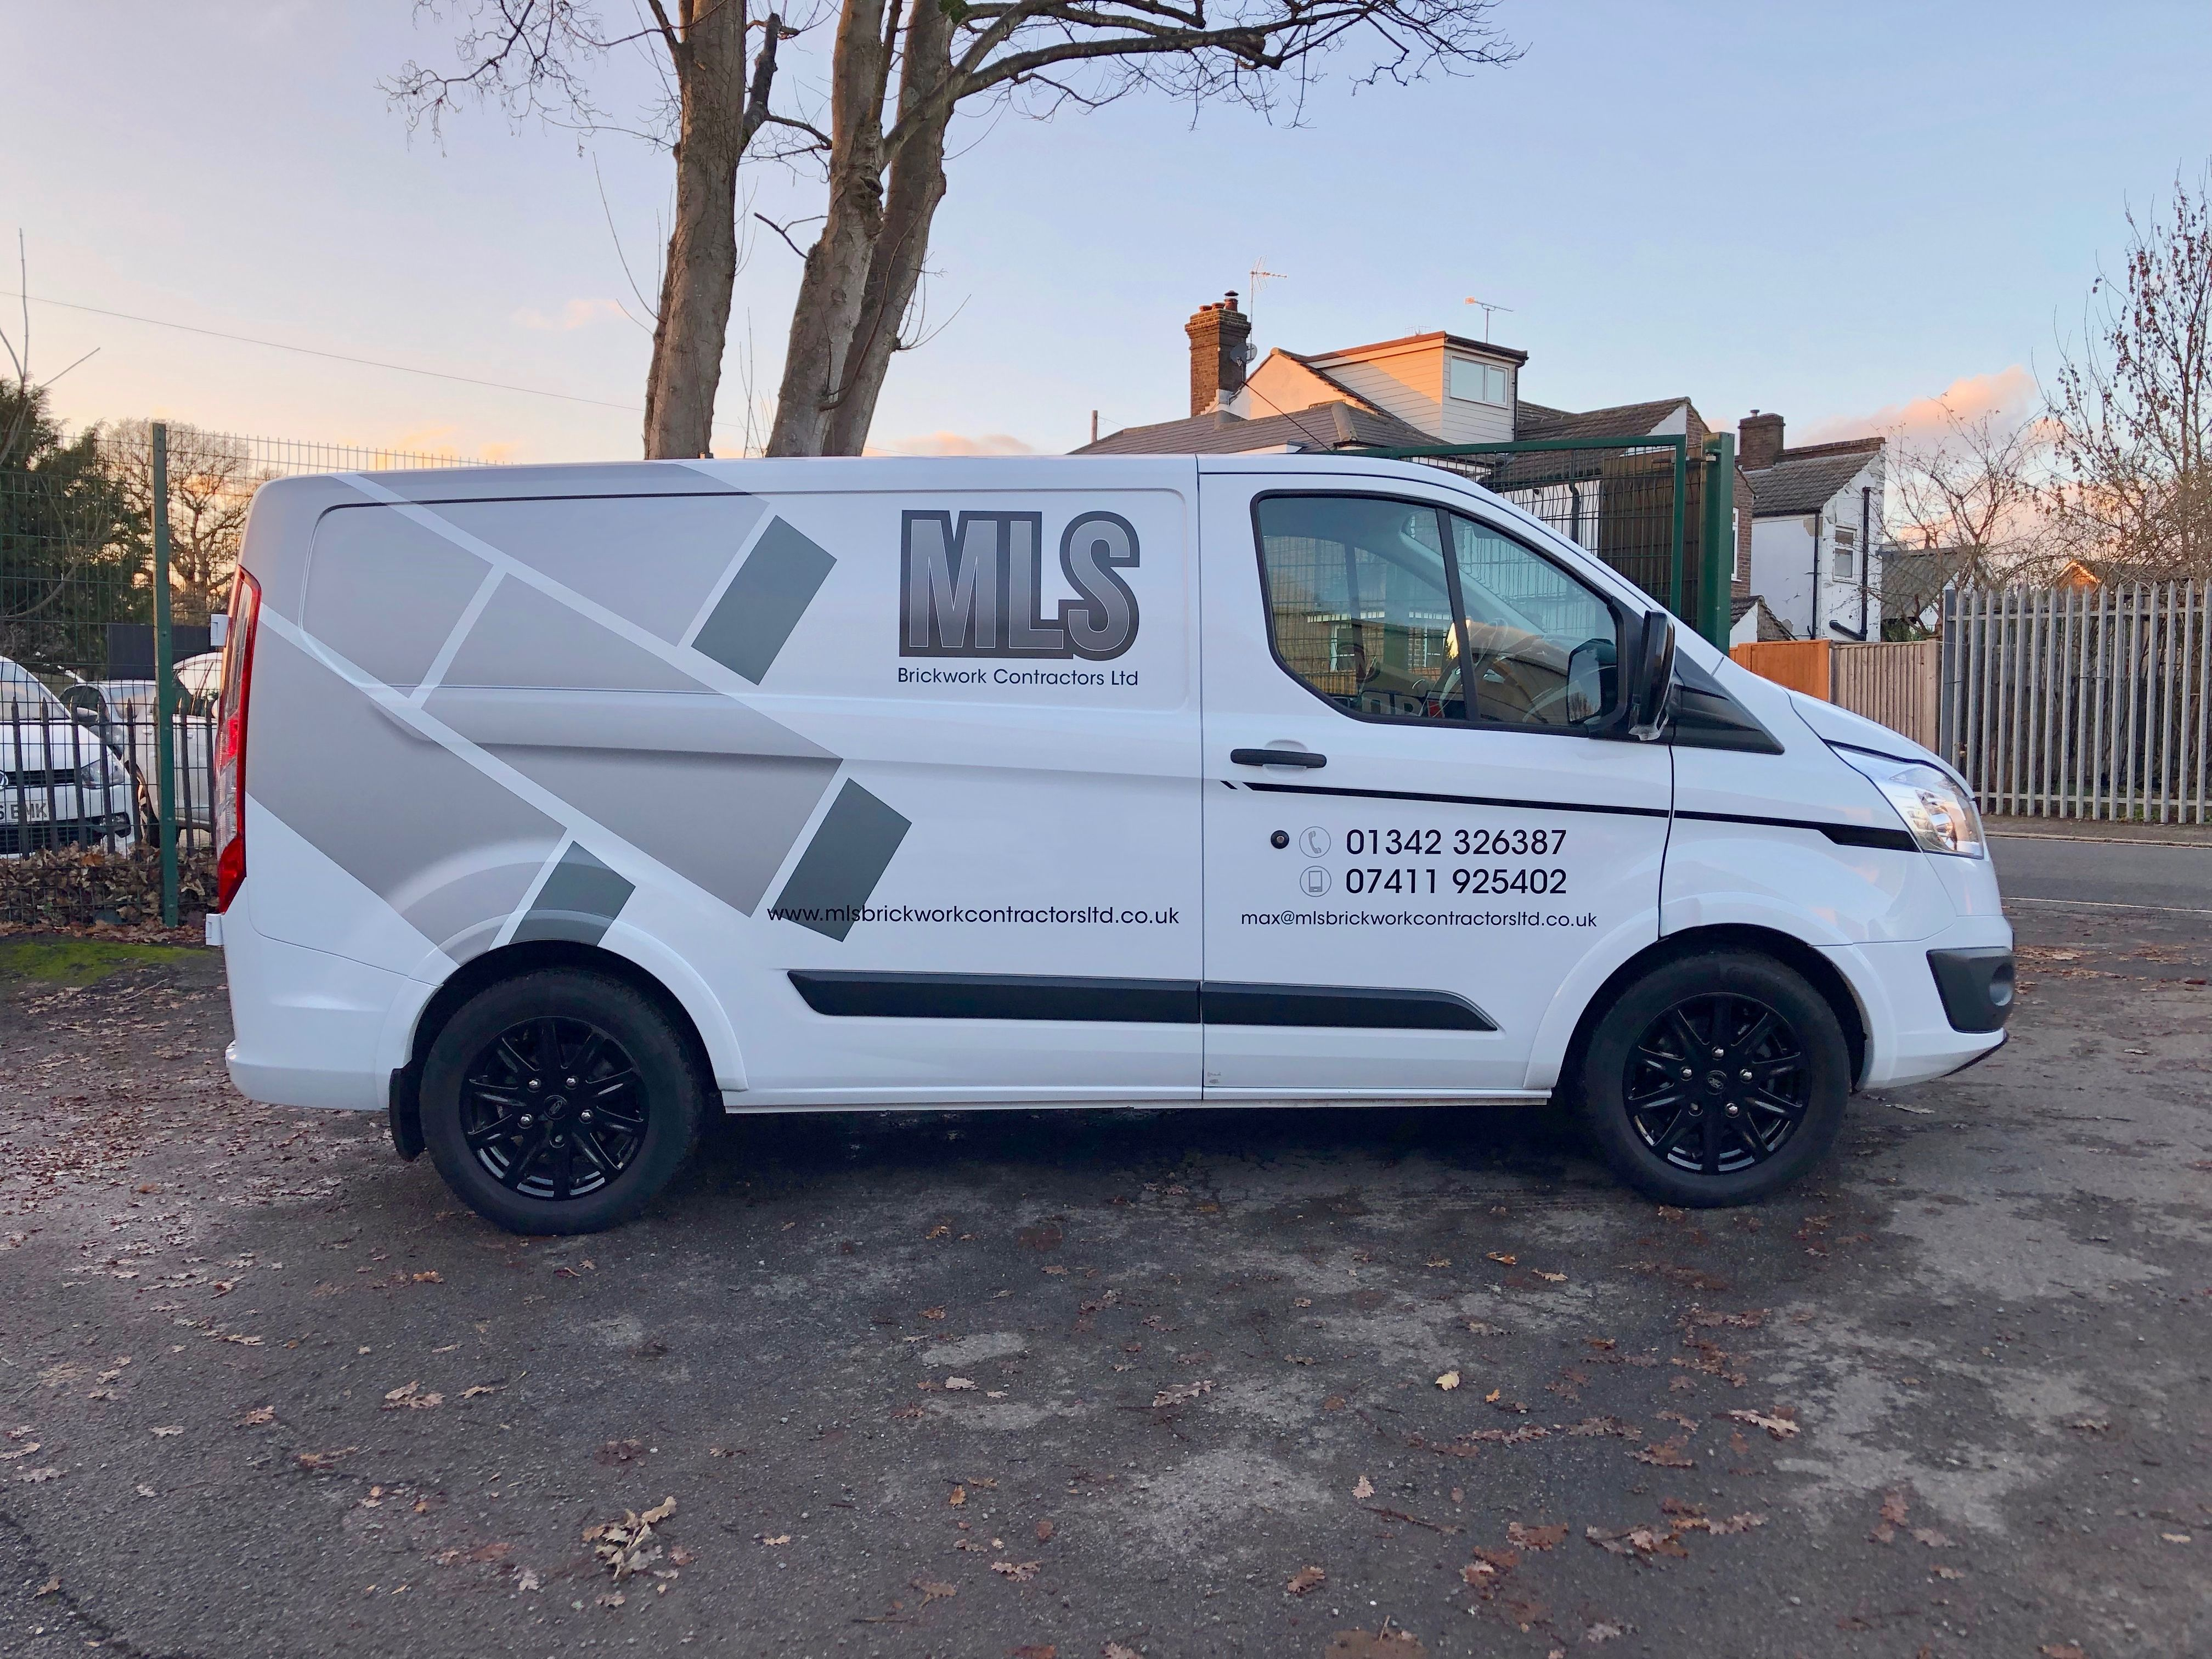 Ford Custom With Matte Vinyl Graphics Fo Mls Brickwork East